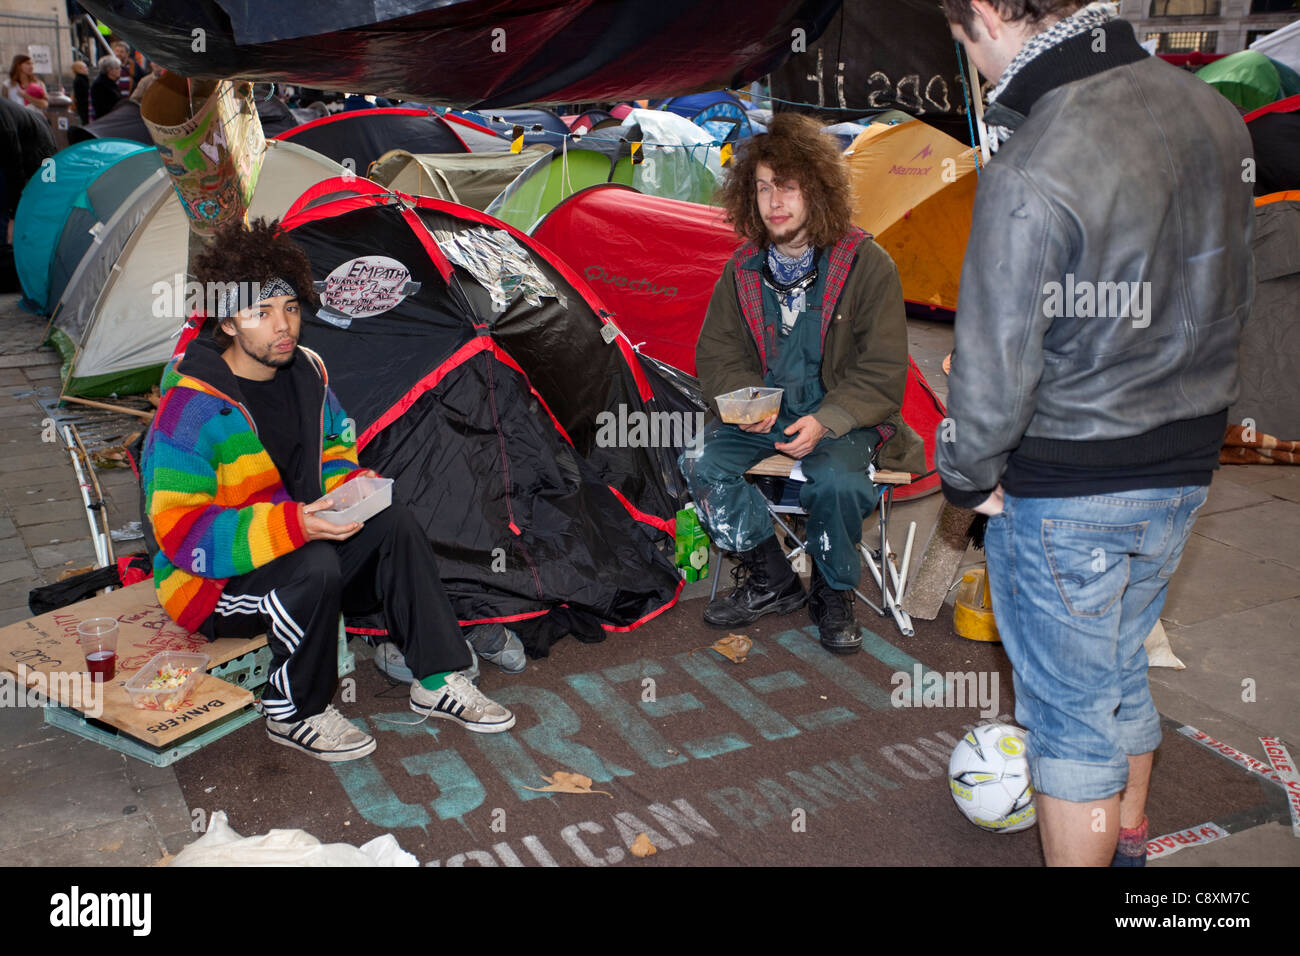 Protesters camping outside St Paul's Cathedral, London, England, UK, GB, 2011 - Stock Image